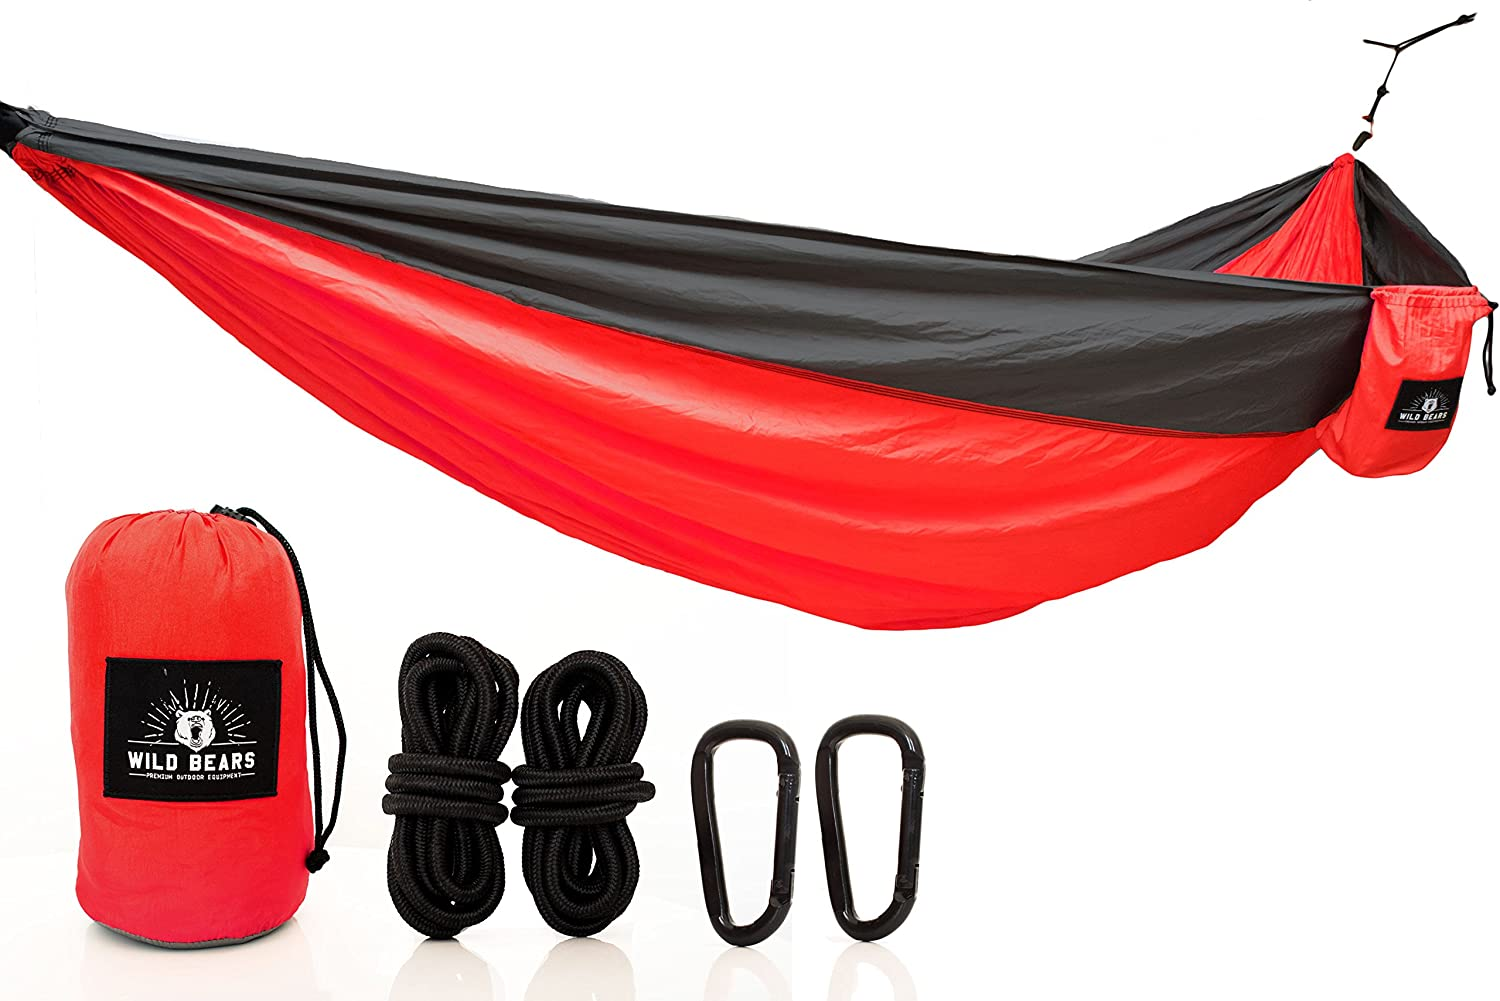 Wild Bears 1 Double Camping Hammock ON SALE Best Quality Hammocks for 2 Person Lightweight, Portable, Parachute Nylon for Outdoors, Backpacking, Travel, Beach, Hiking, Yard, Garden 118 x 78 in